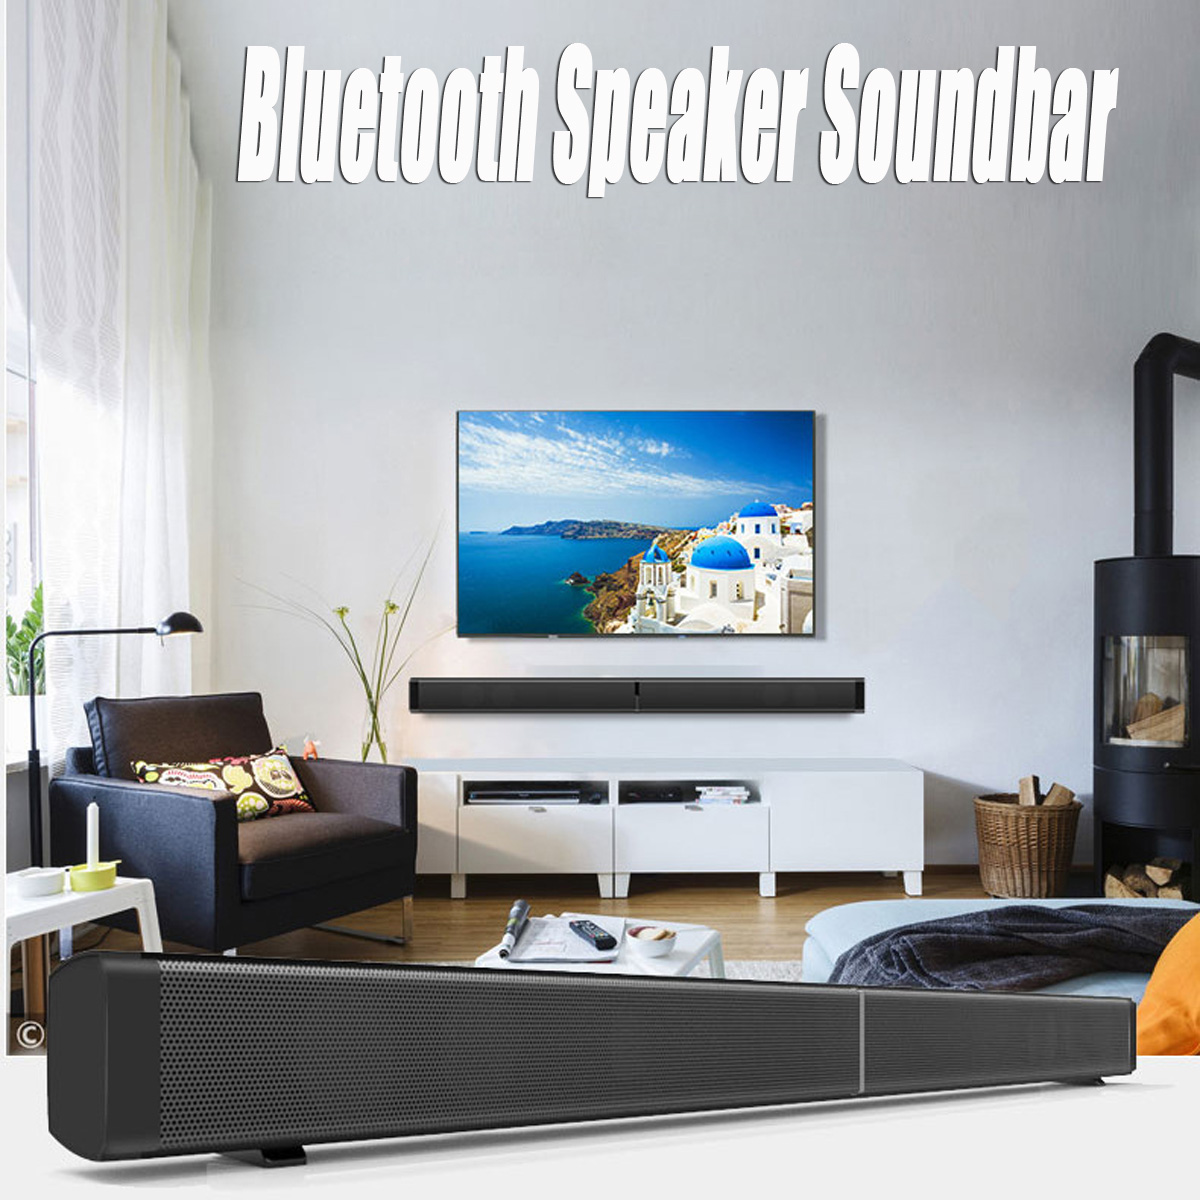 Sound Bar Home Theater System Music Center Soundbar Bluetooth Speaker Soundbar Super Bass ihens5 k2 gaming headset headphones casque 7 1 channel sound stereo usb gamer headphone with mic led light for computer pc gamer